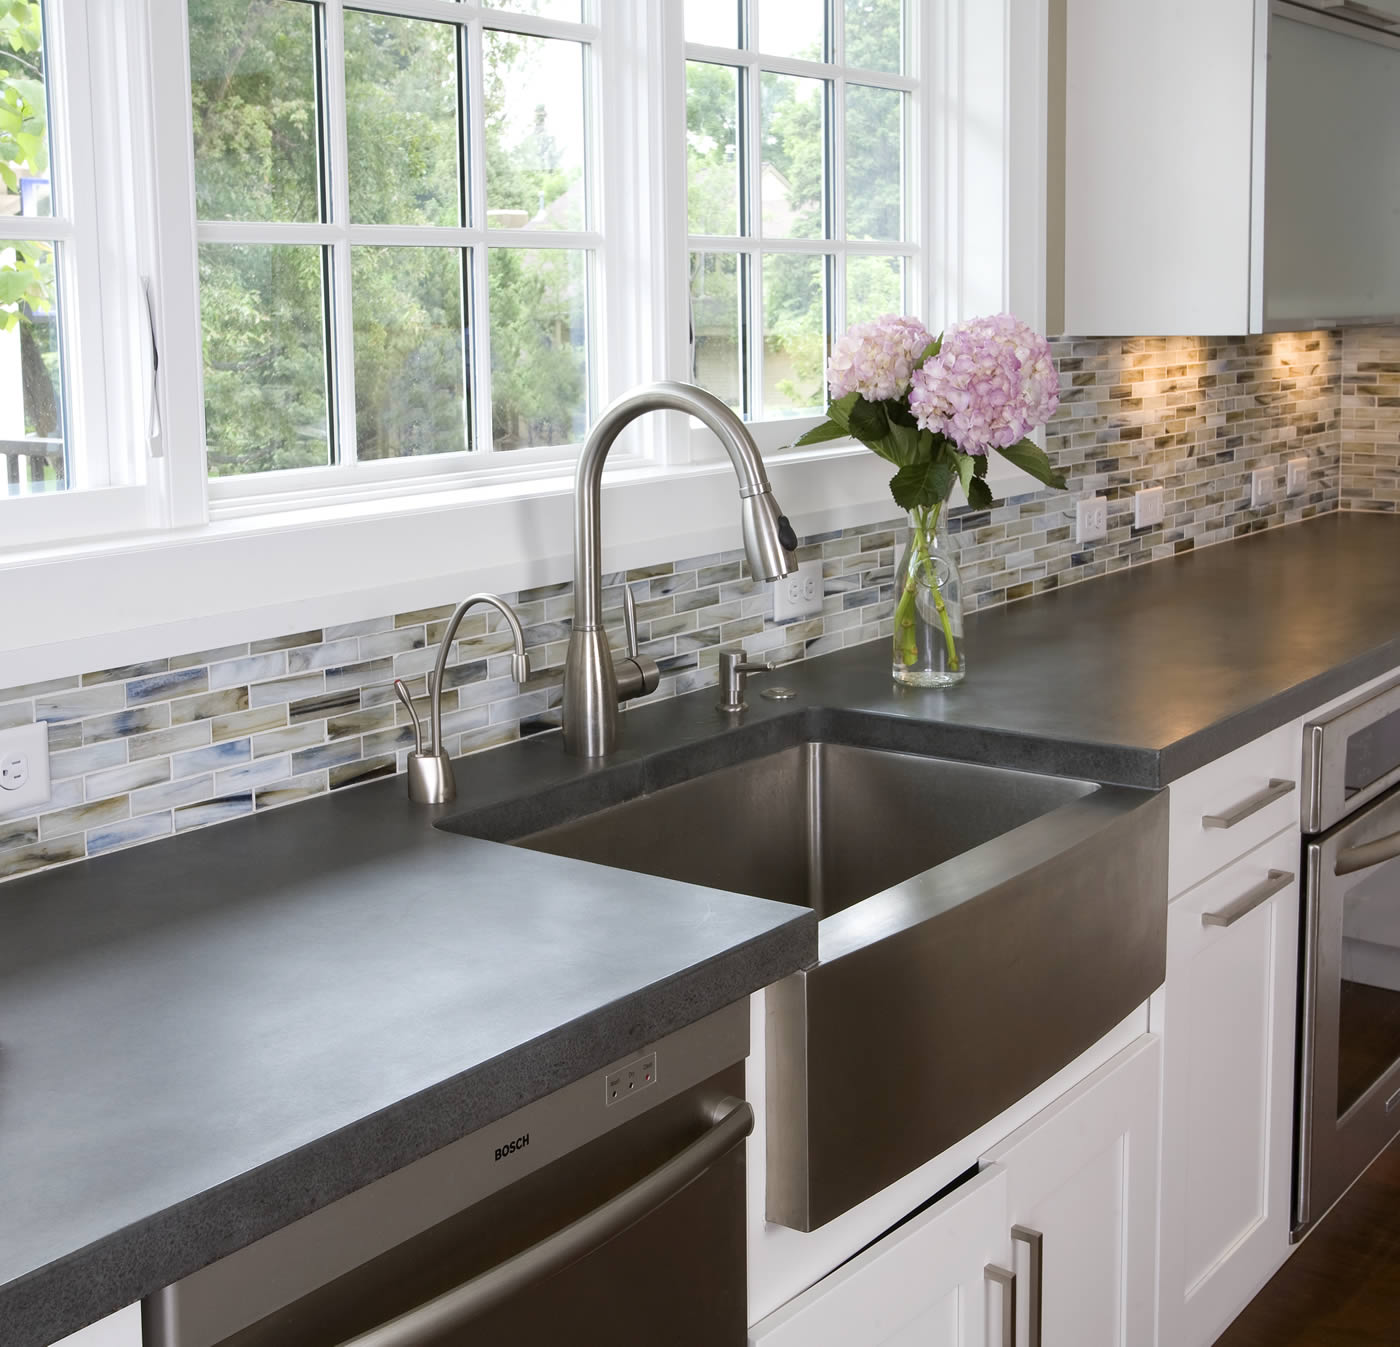 silver apron sink plus faucet on white kitchen cabinet with grey countertop under the white window for kitchen decor ideas